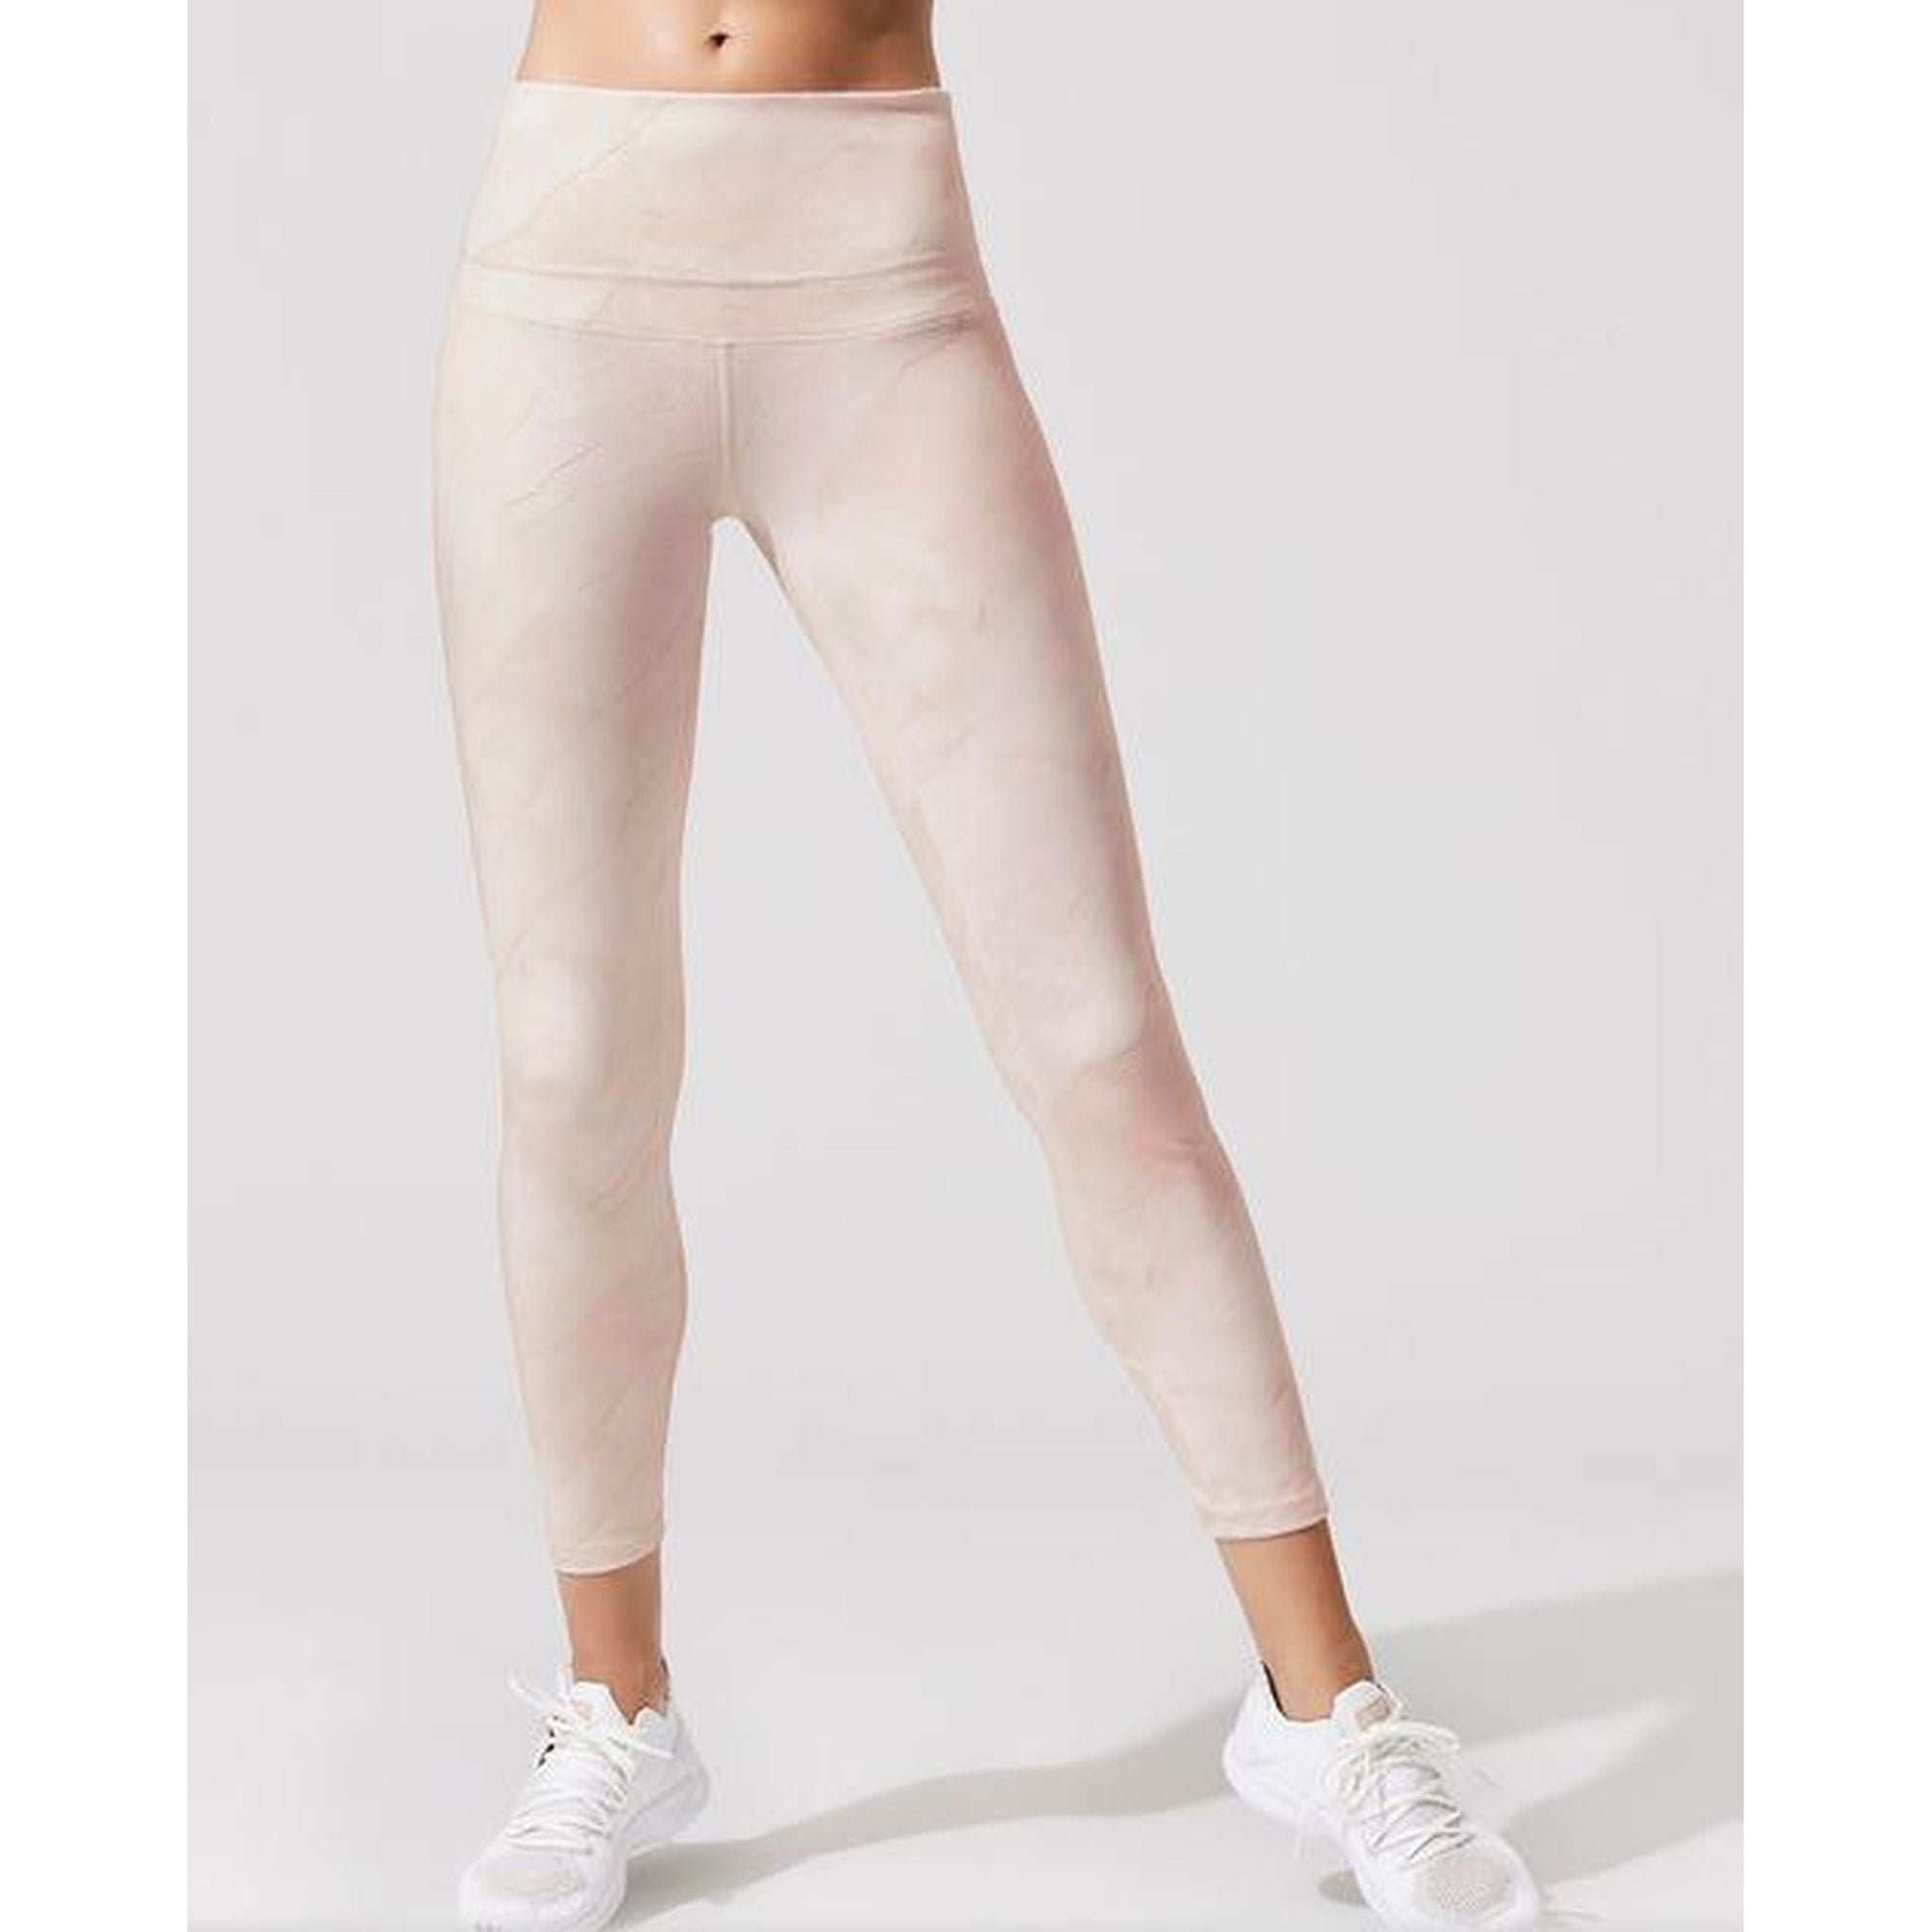 Varley Biona Tight in Rust Marble - Pink